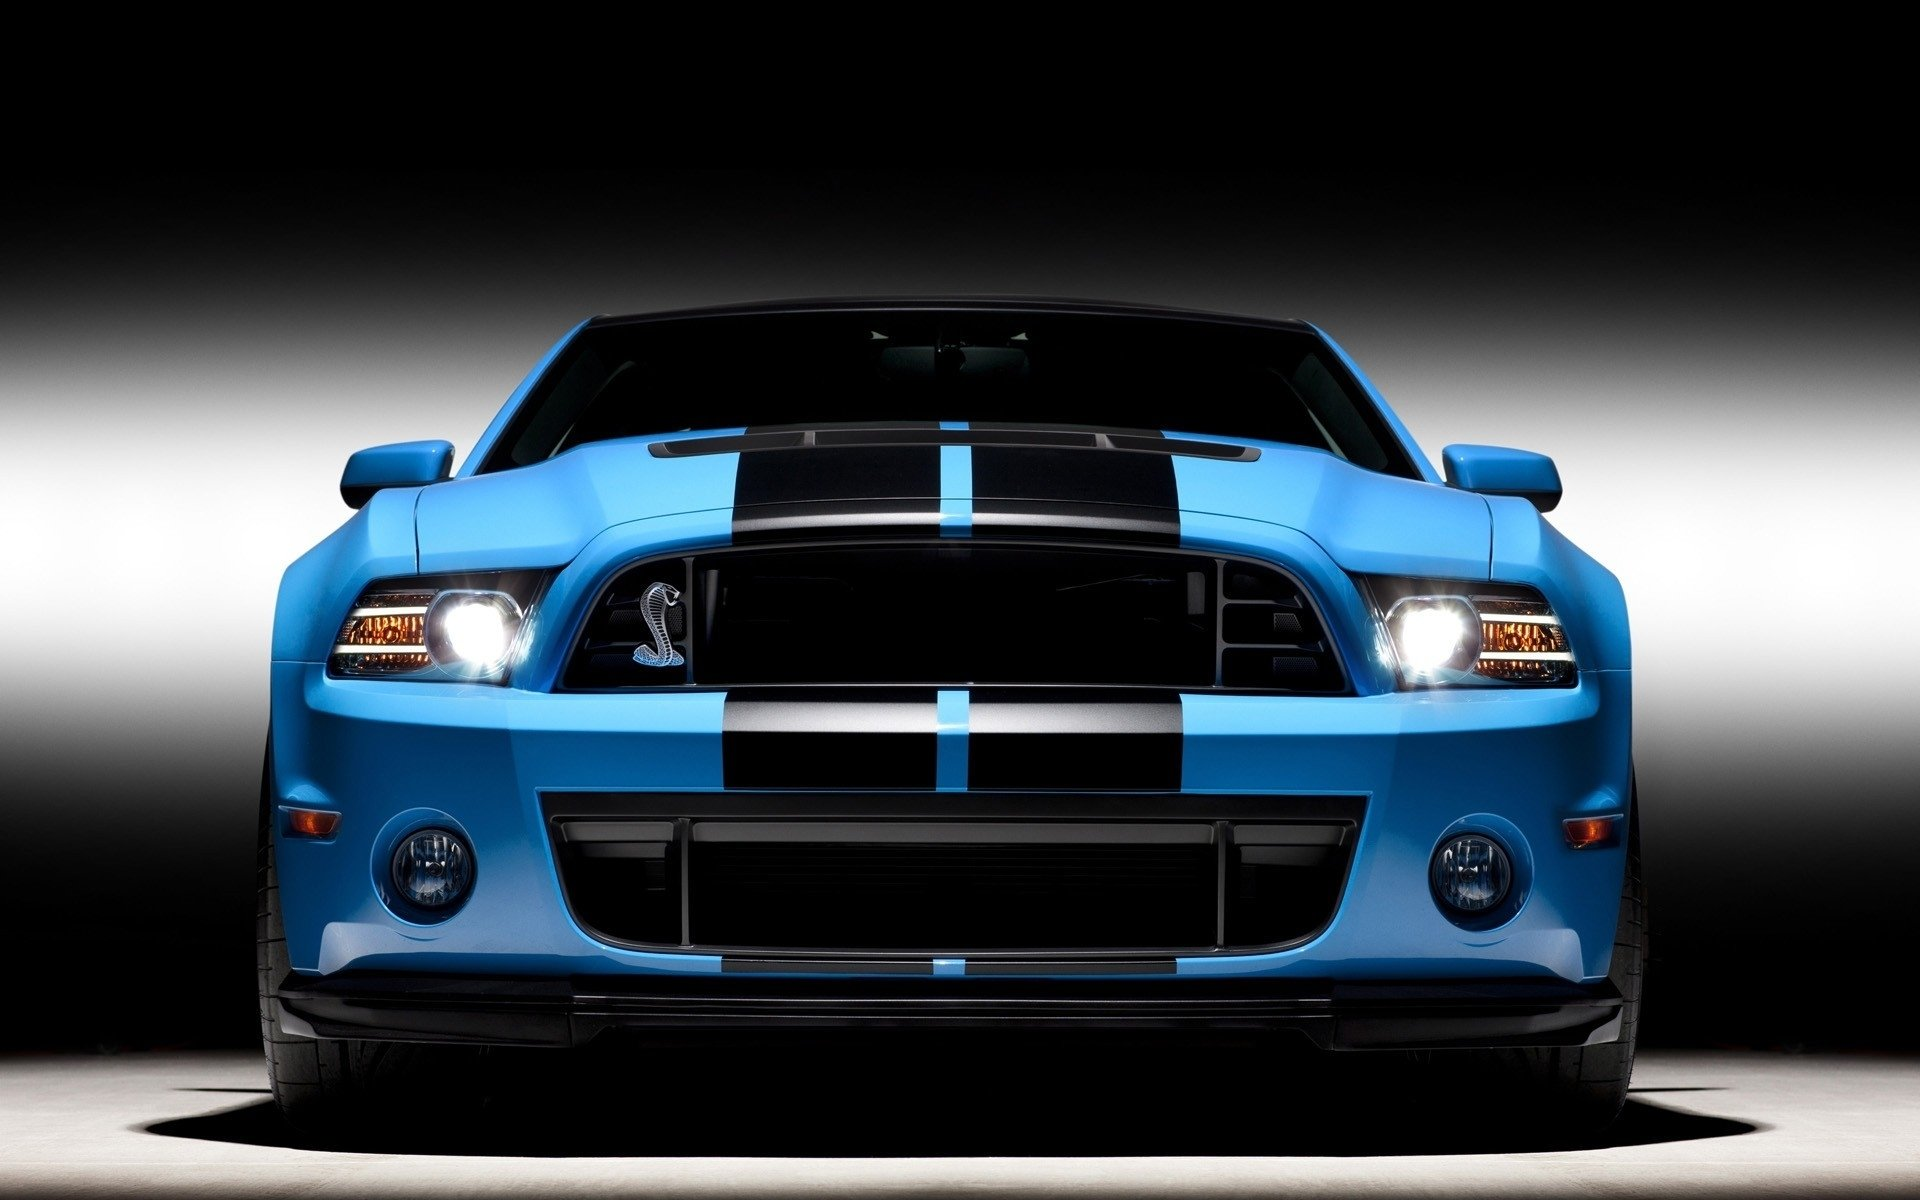 1920x1200 - Ford Mustang GT500 Wallpapers 19